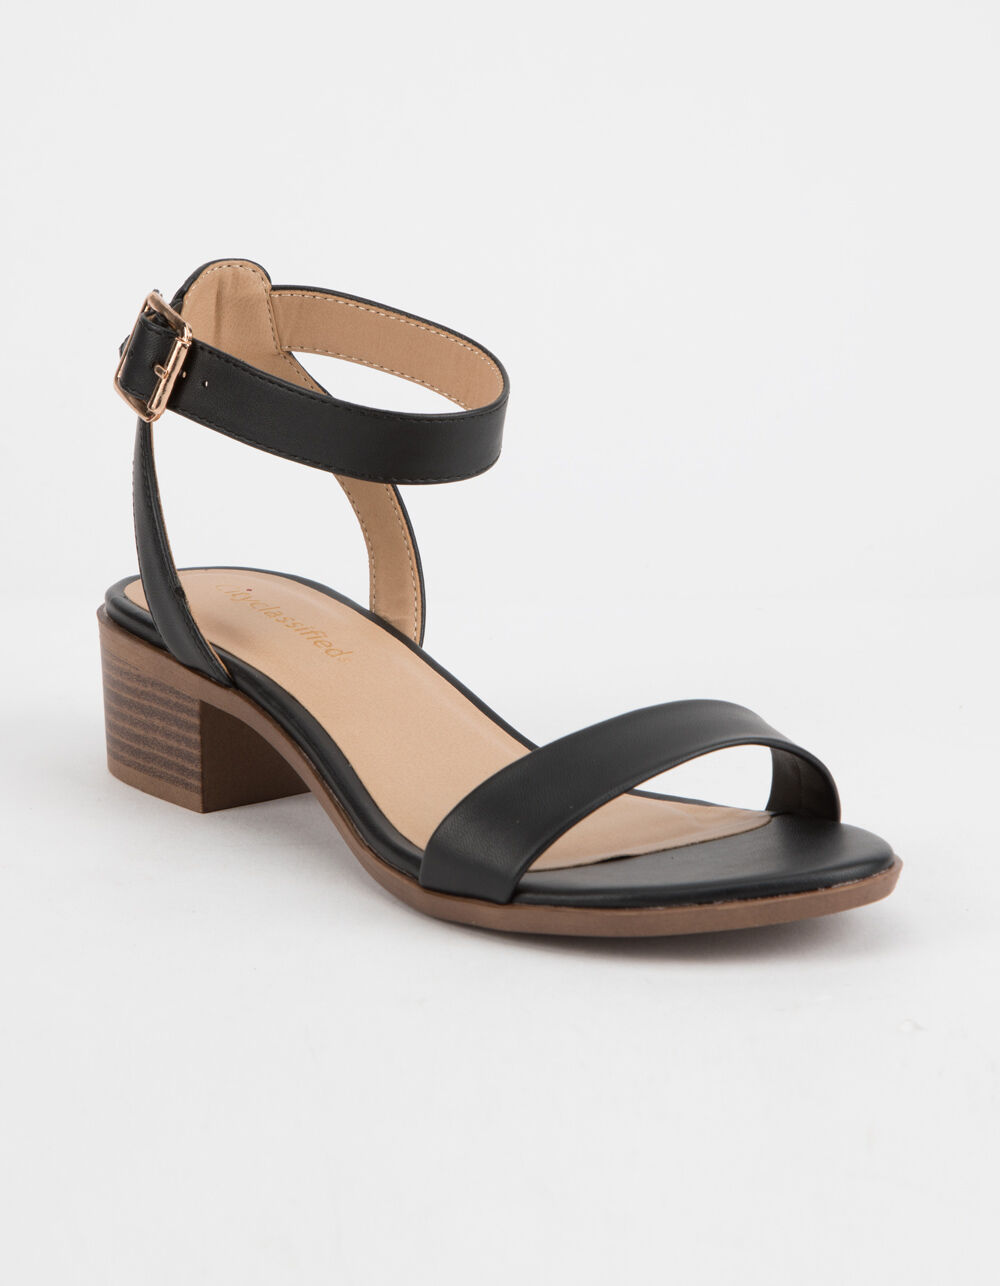 Image of CITY CLASSIFIED ANKLE STRAP BLACK HEELED SANDALS